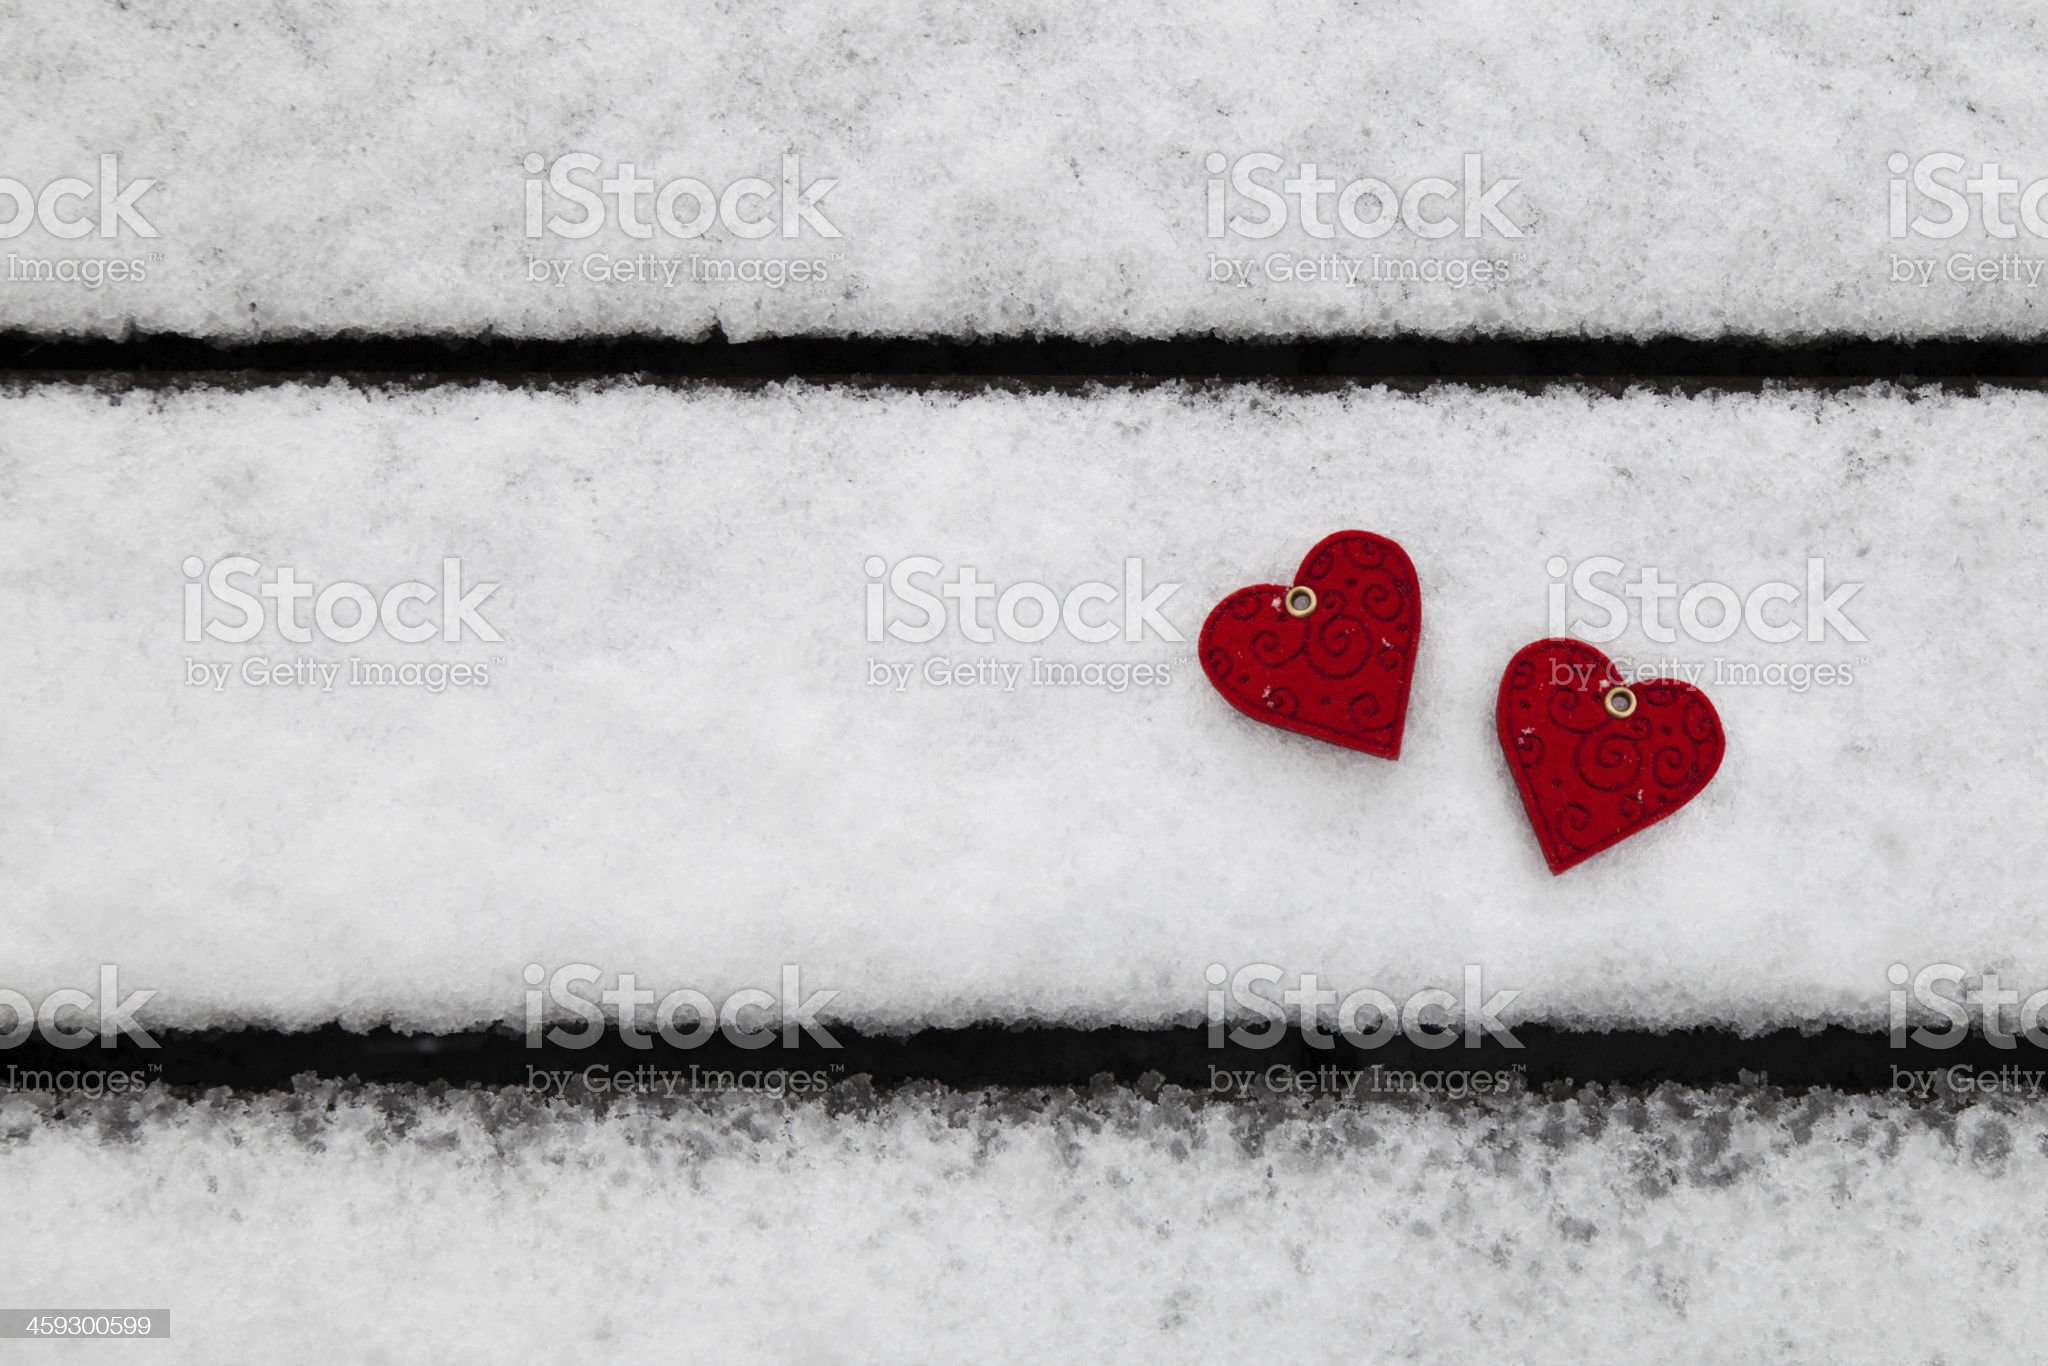 Two Hearts on Snow royalty-free stock photo